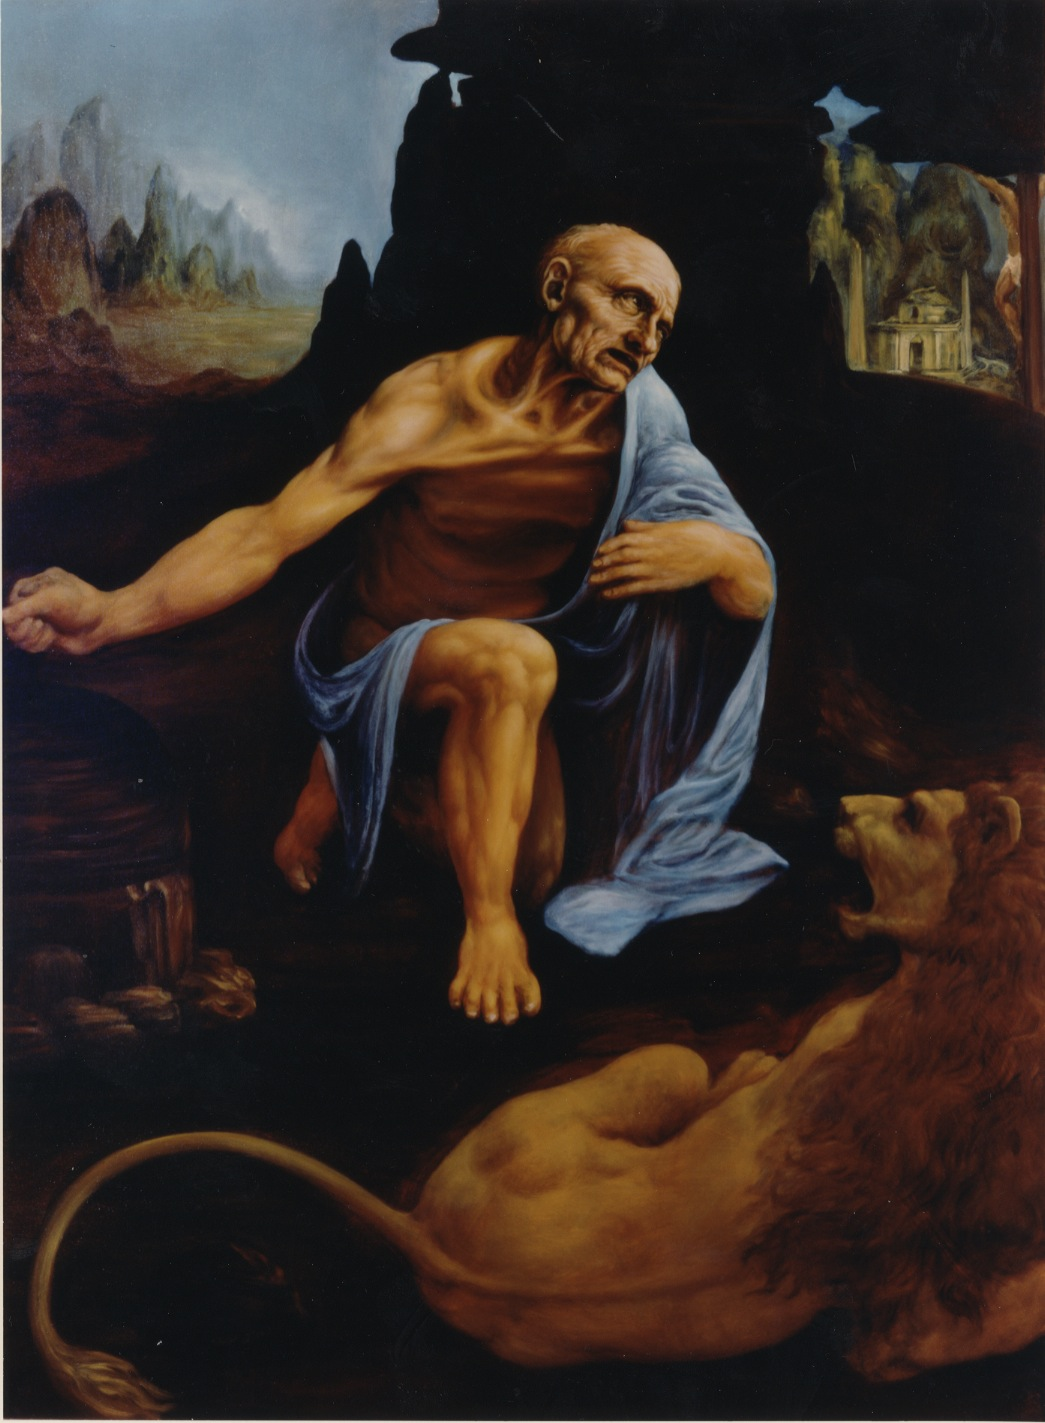 st-jerome-da-vinci-copy-by-david-jean.jpeg